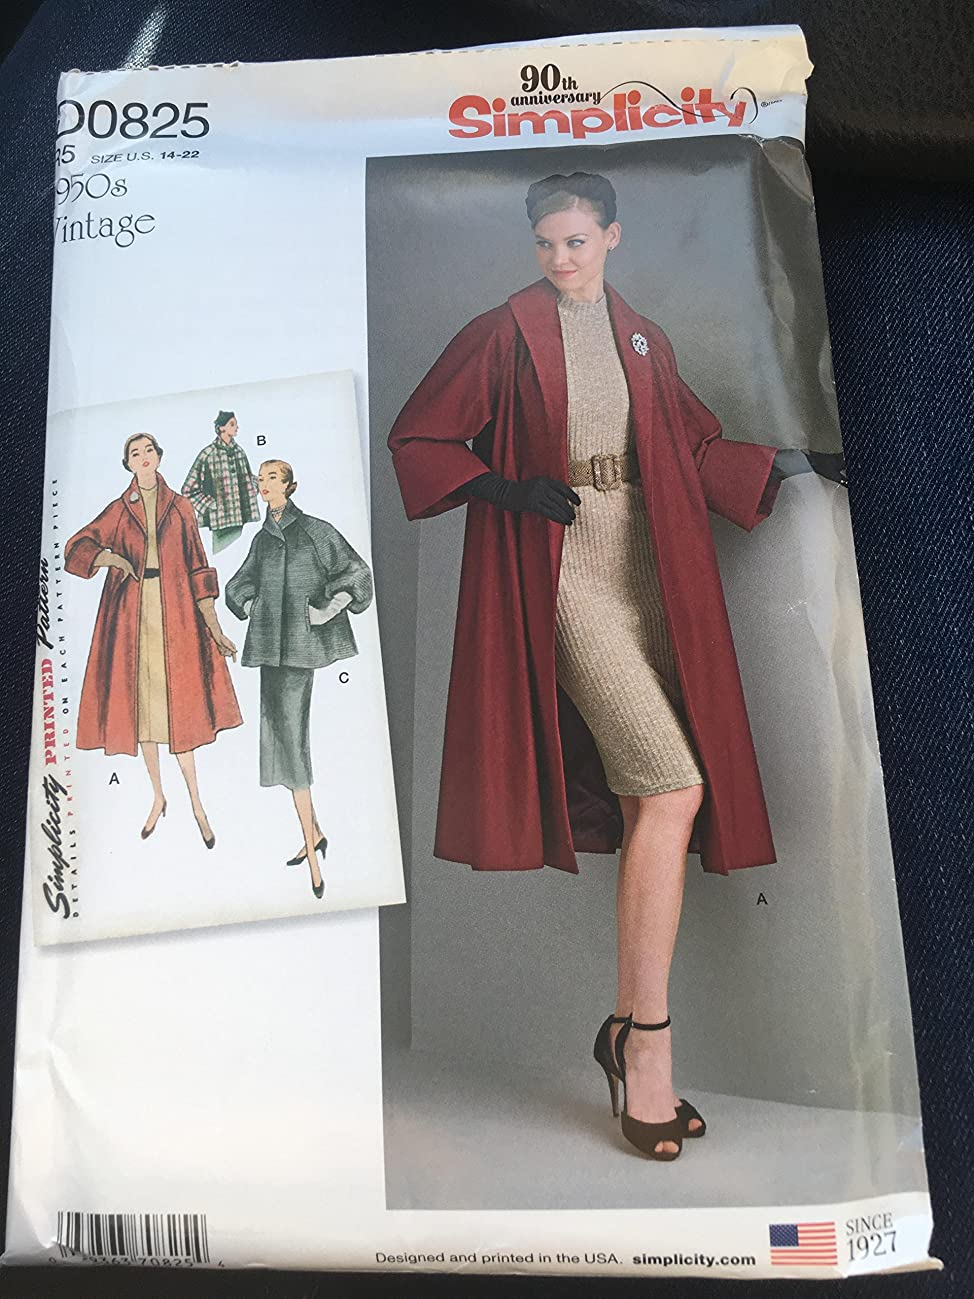 Simplicity Sewing Pattern D0825 / 8509 - Misses Vintage Coat or Jacket, R5(14-16-18-20-22)